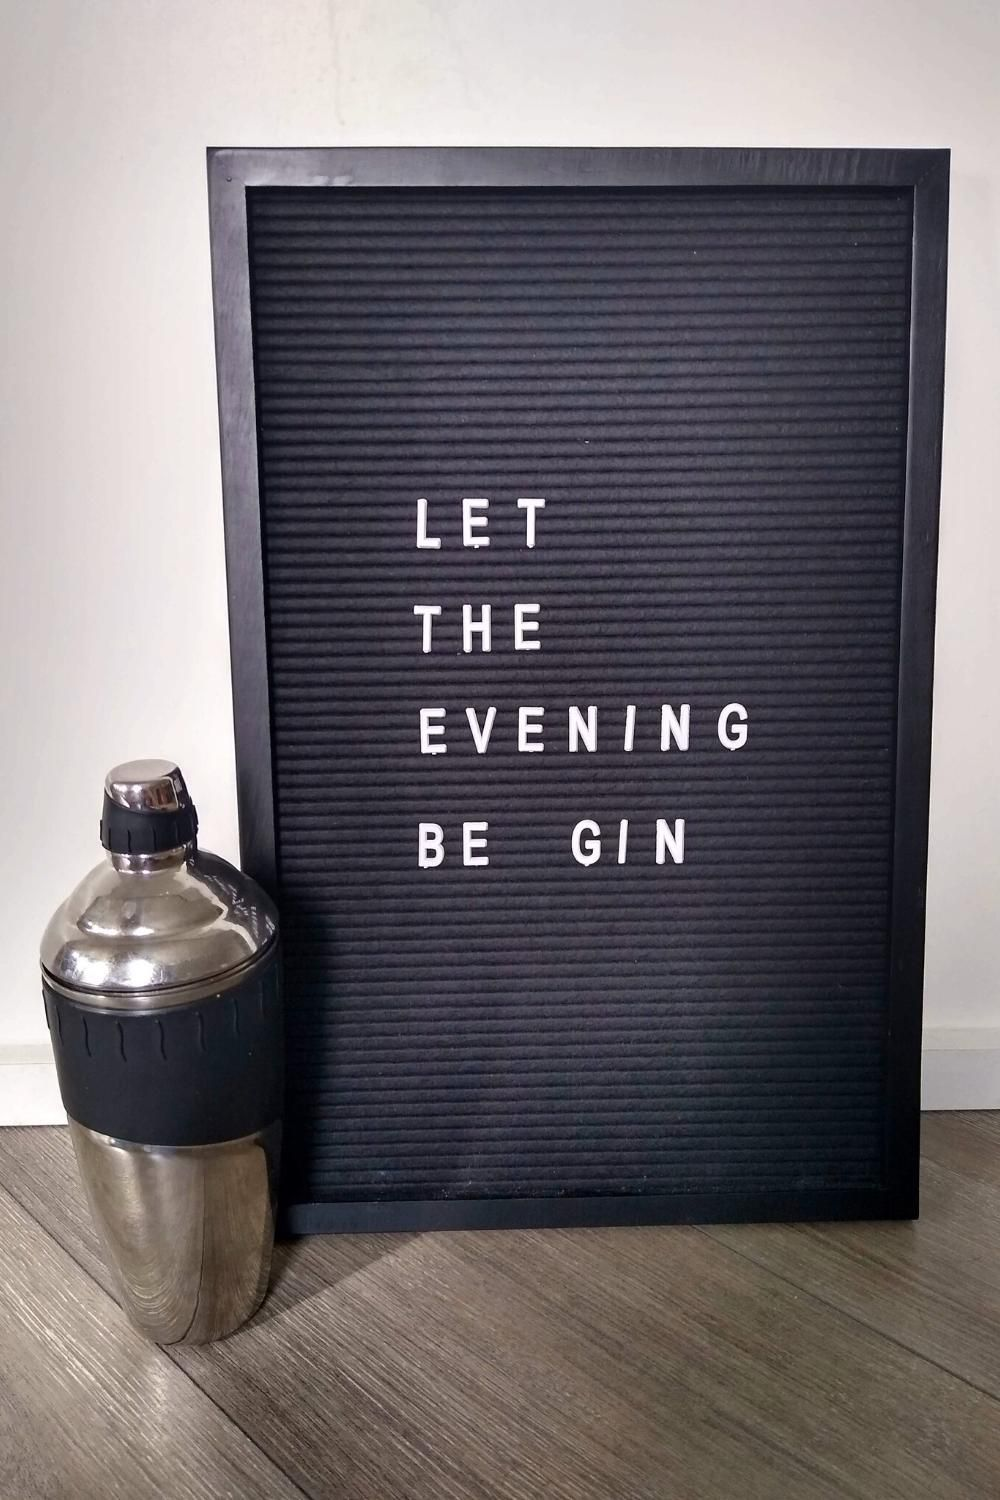 10 Letter Board Quotes to Make You Laugh!